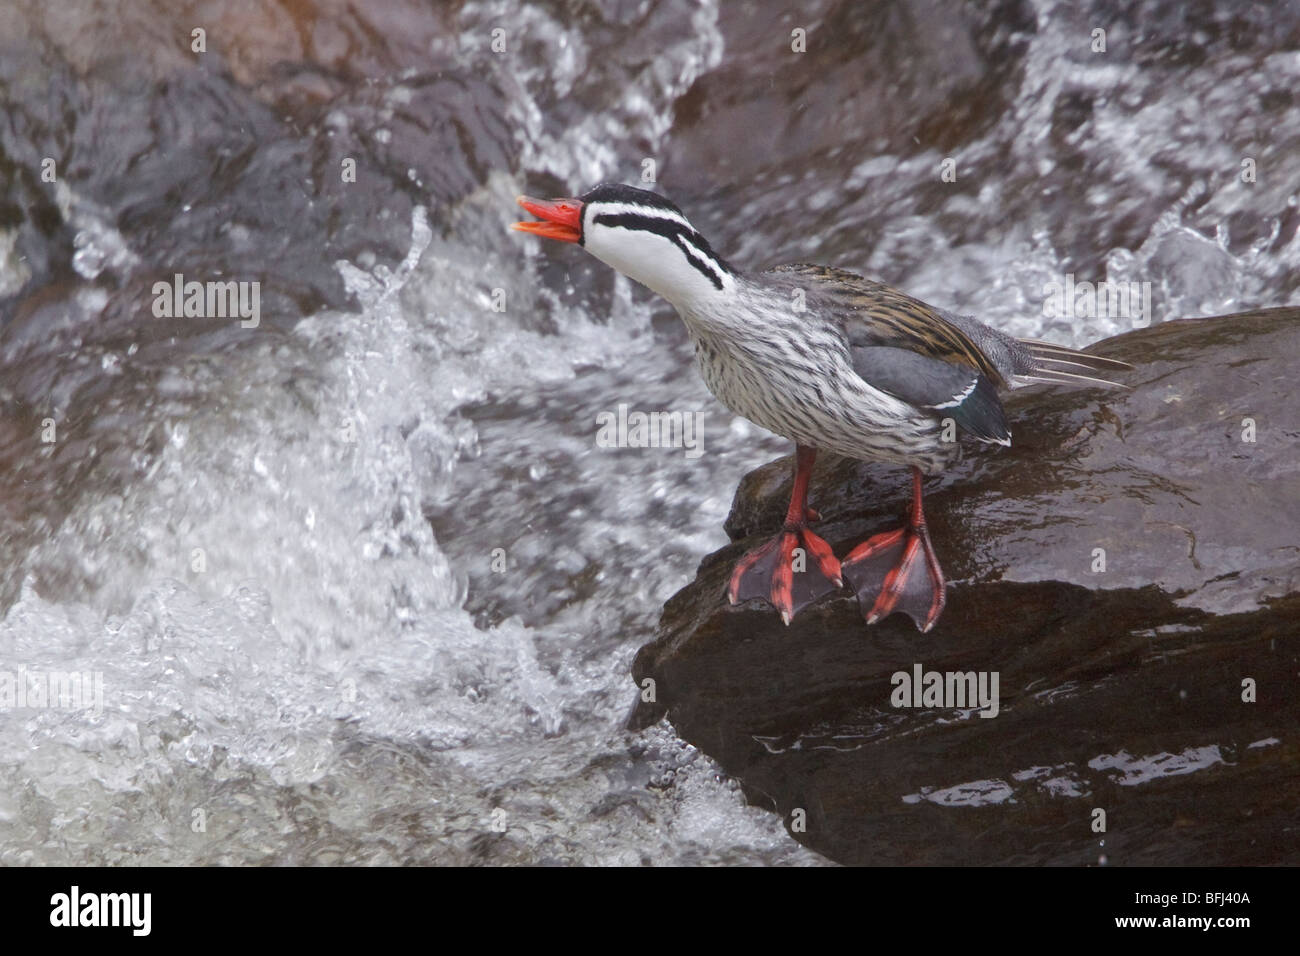 Torrent Duck (Merganetta armata) perched on a rock alongside a rushing stream in the highlands of central Ecuador. - Stock Image